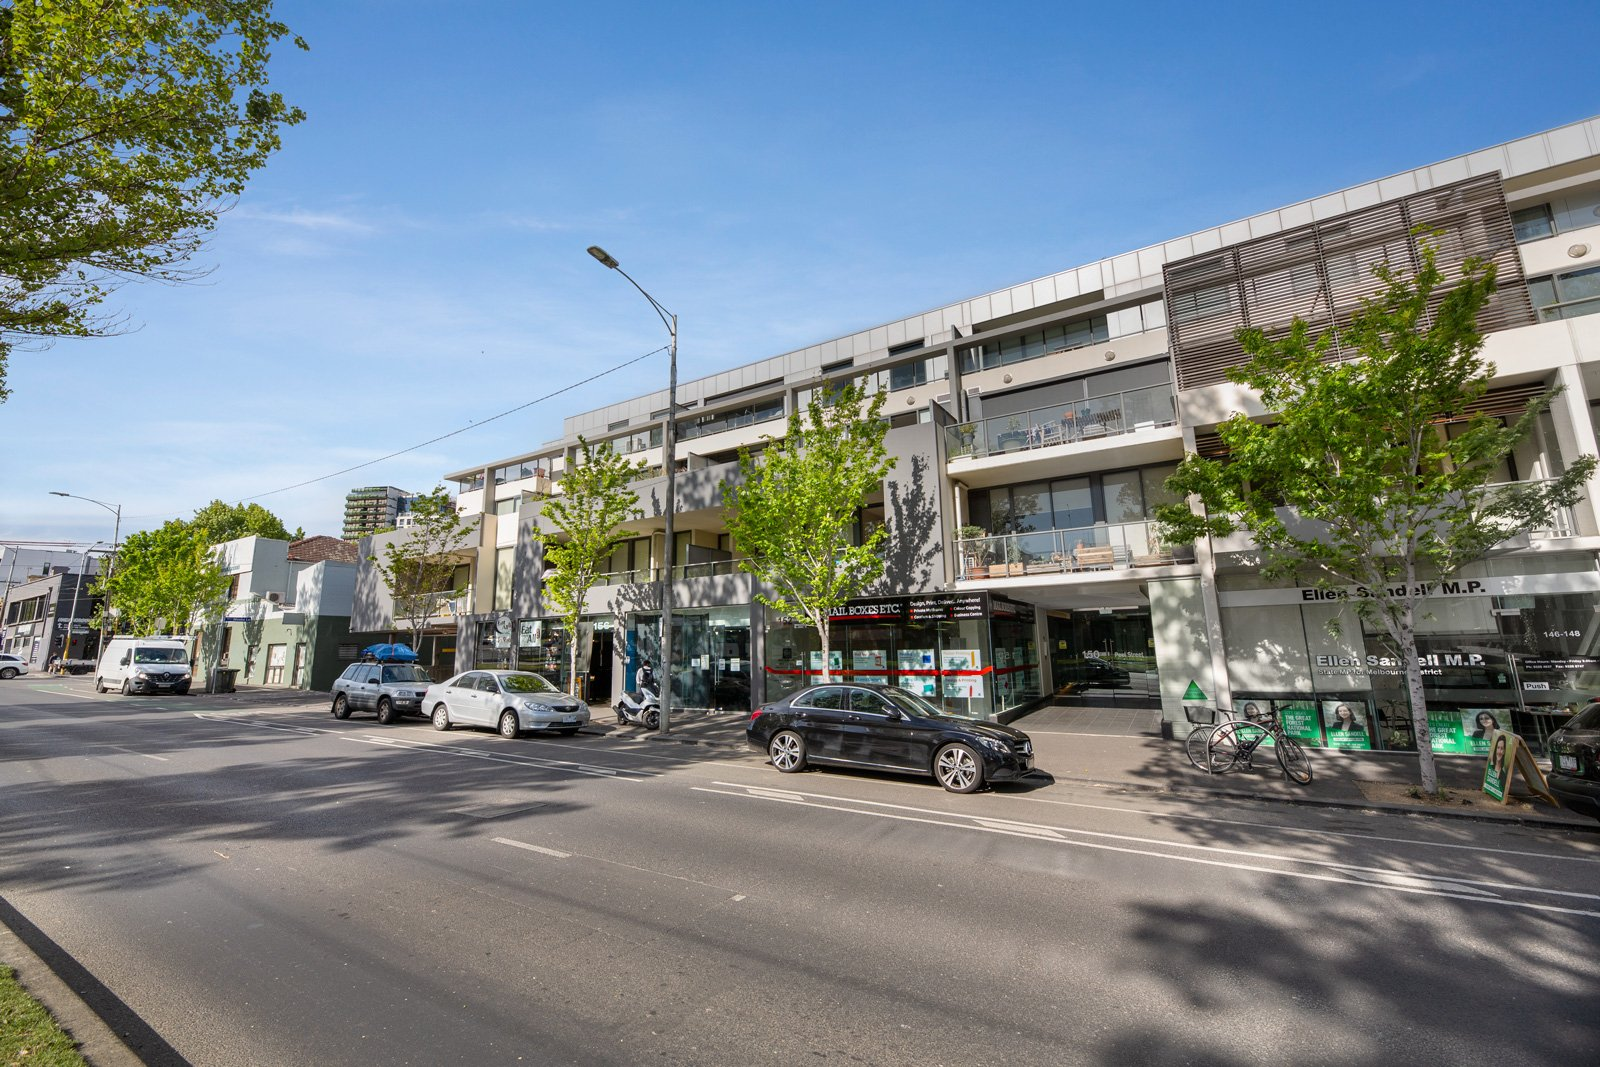 109/150 Peel Street, North Melbourne, VIC, 3051 image 6